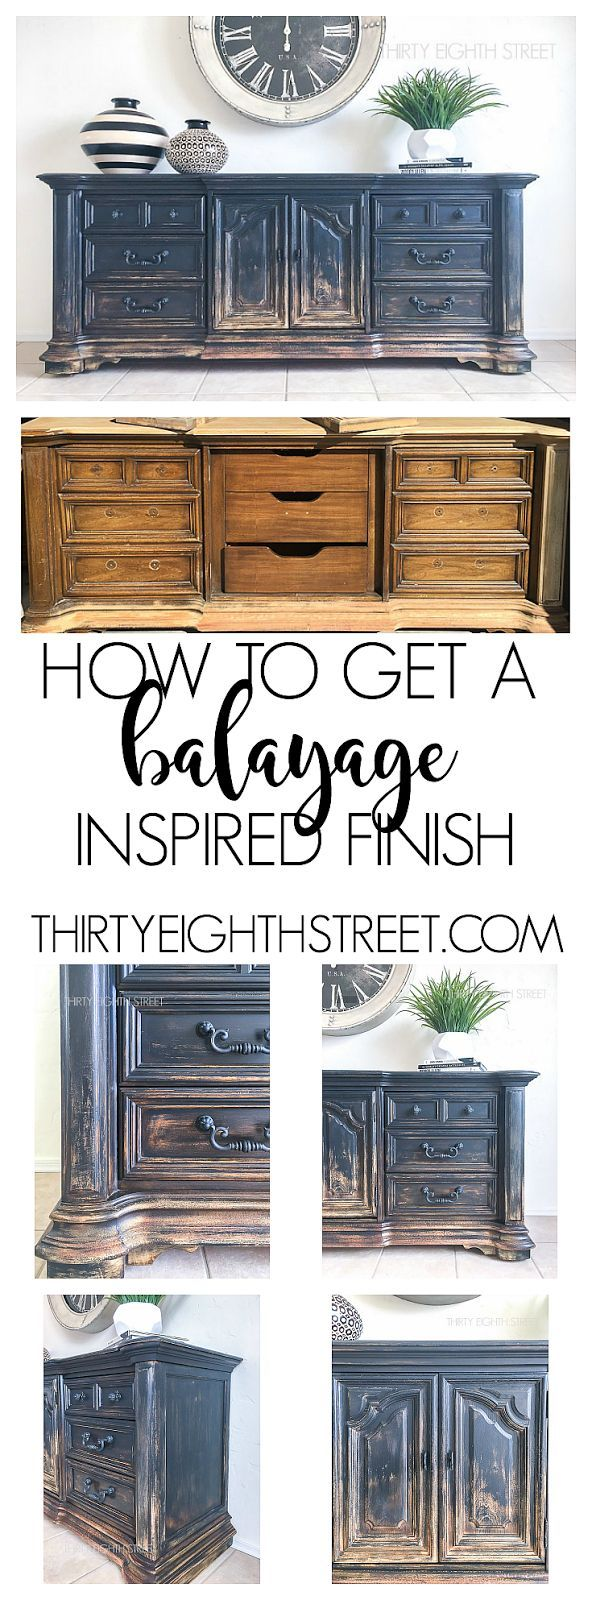 Balayage Painted Furniture Technique You Have To See Furniture Painting Techniques Painting Furniture Diy Furniture Makeover